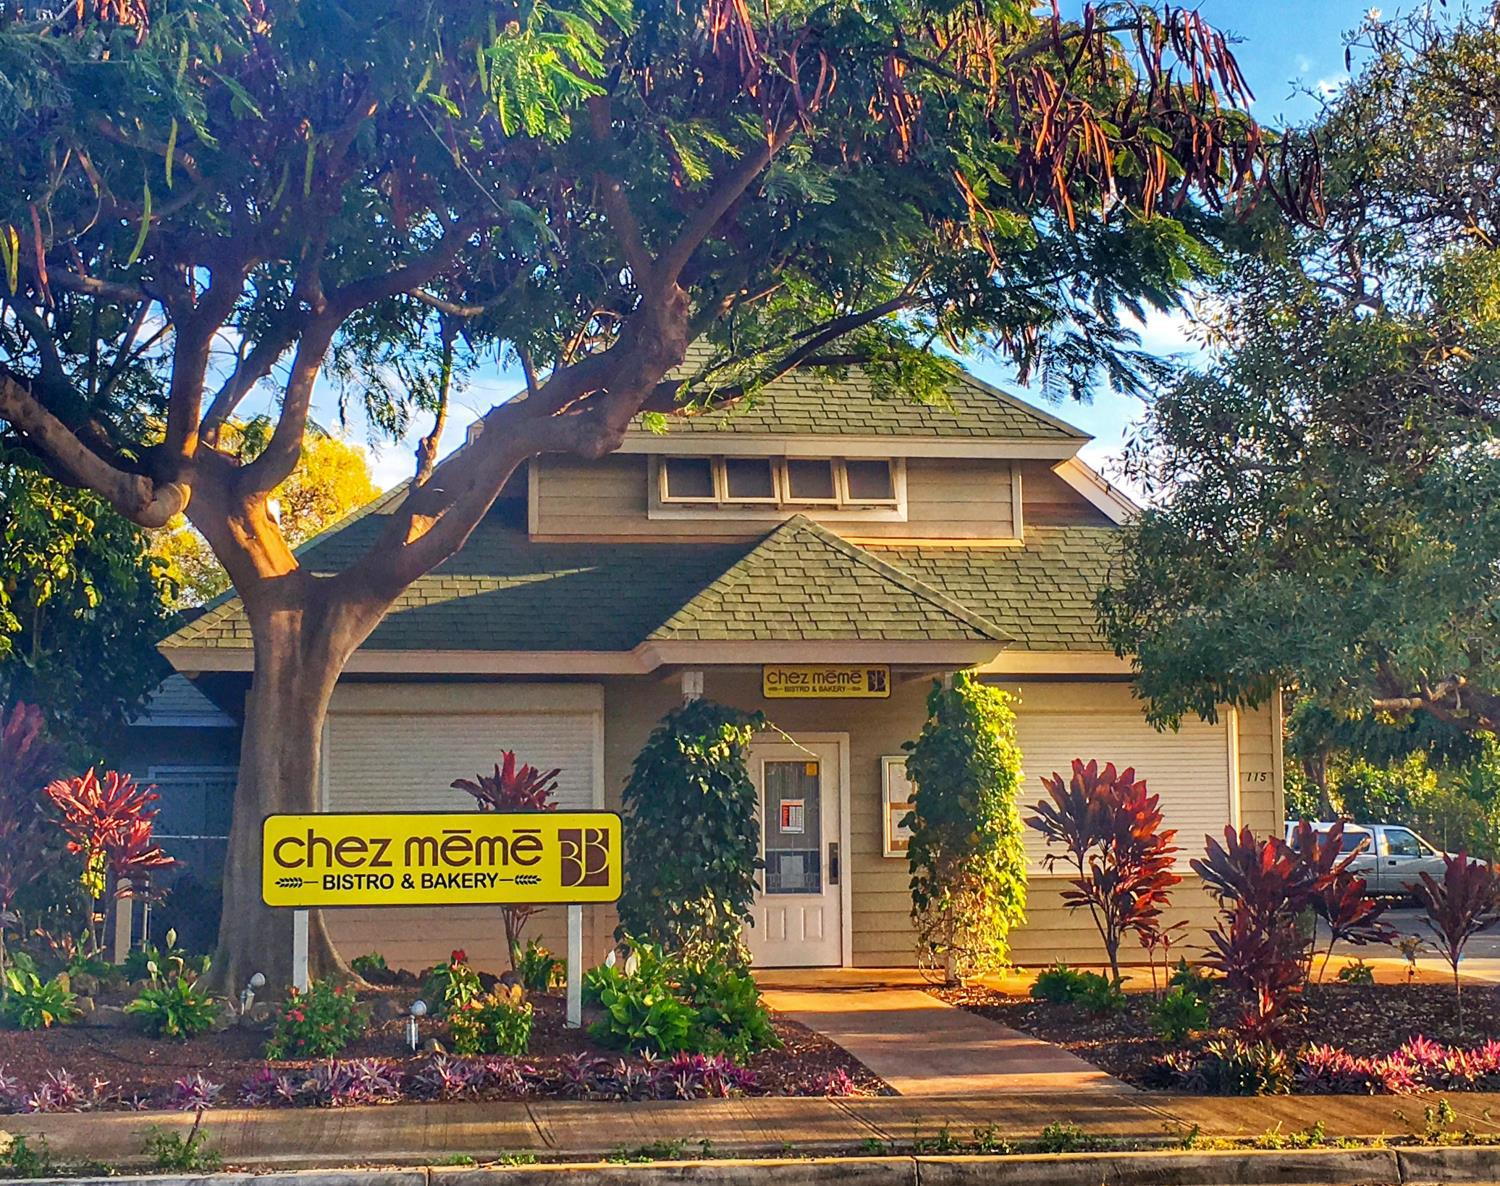 Kokua Realty Commercial Real Estate For Sale 115 Kio Loop Kihei Hawaii Keoni Fursse Investment Properties